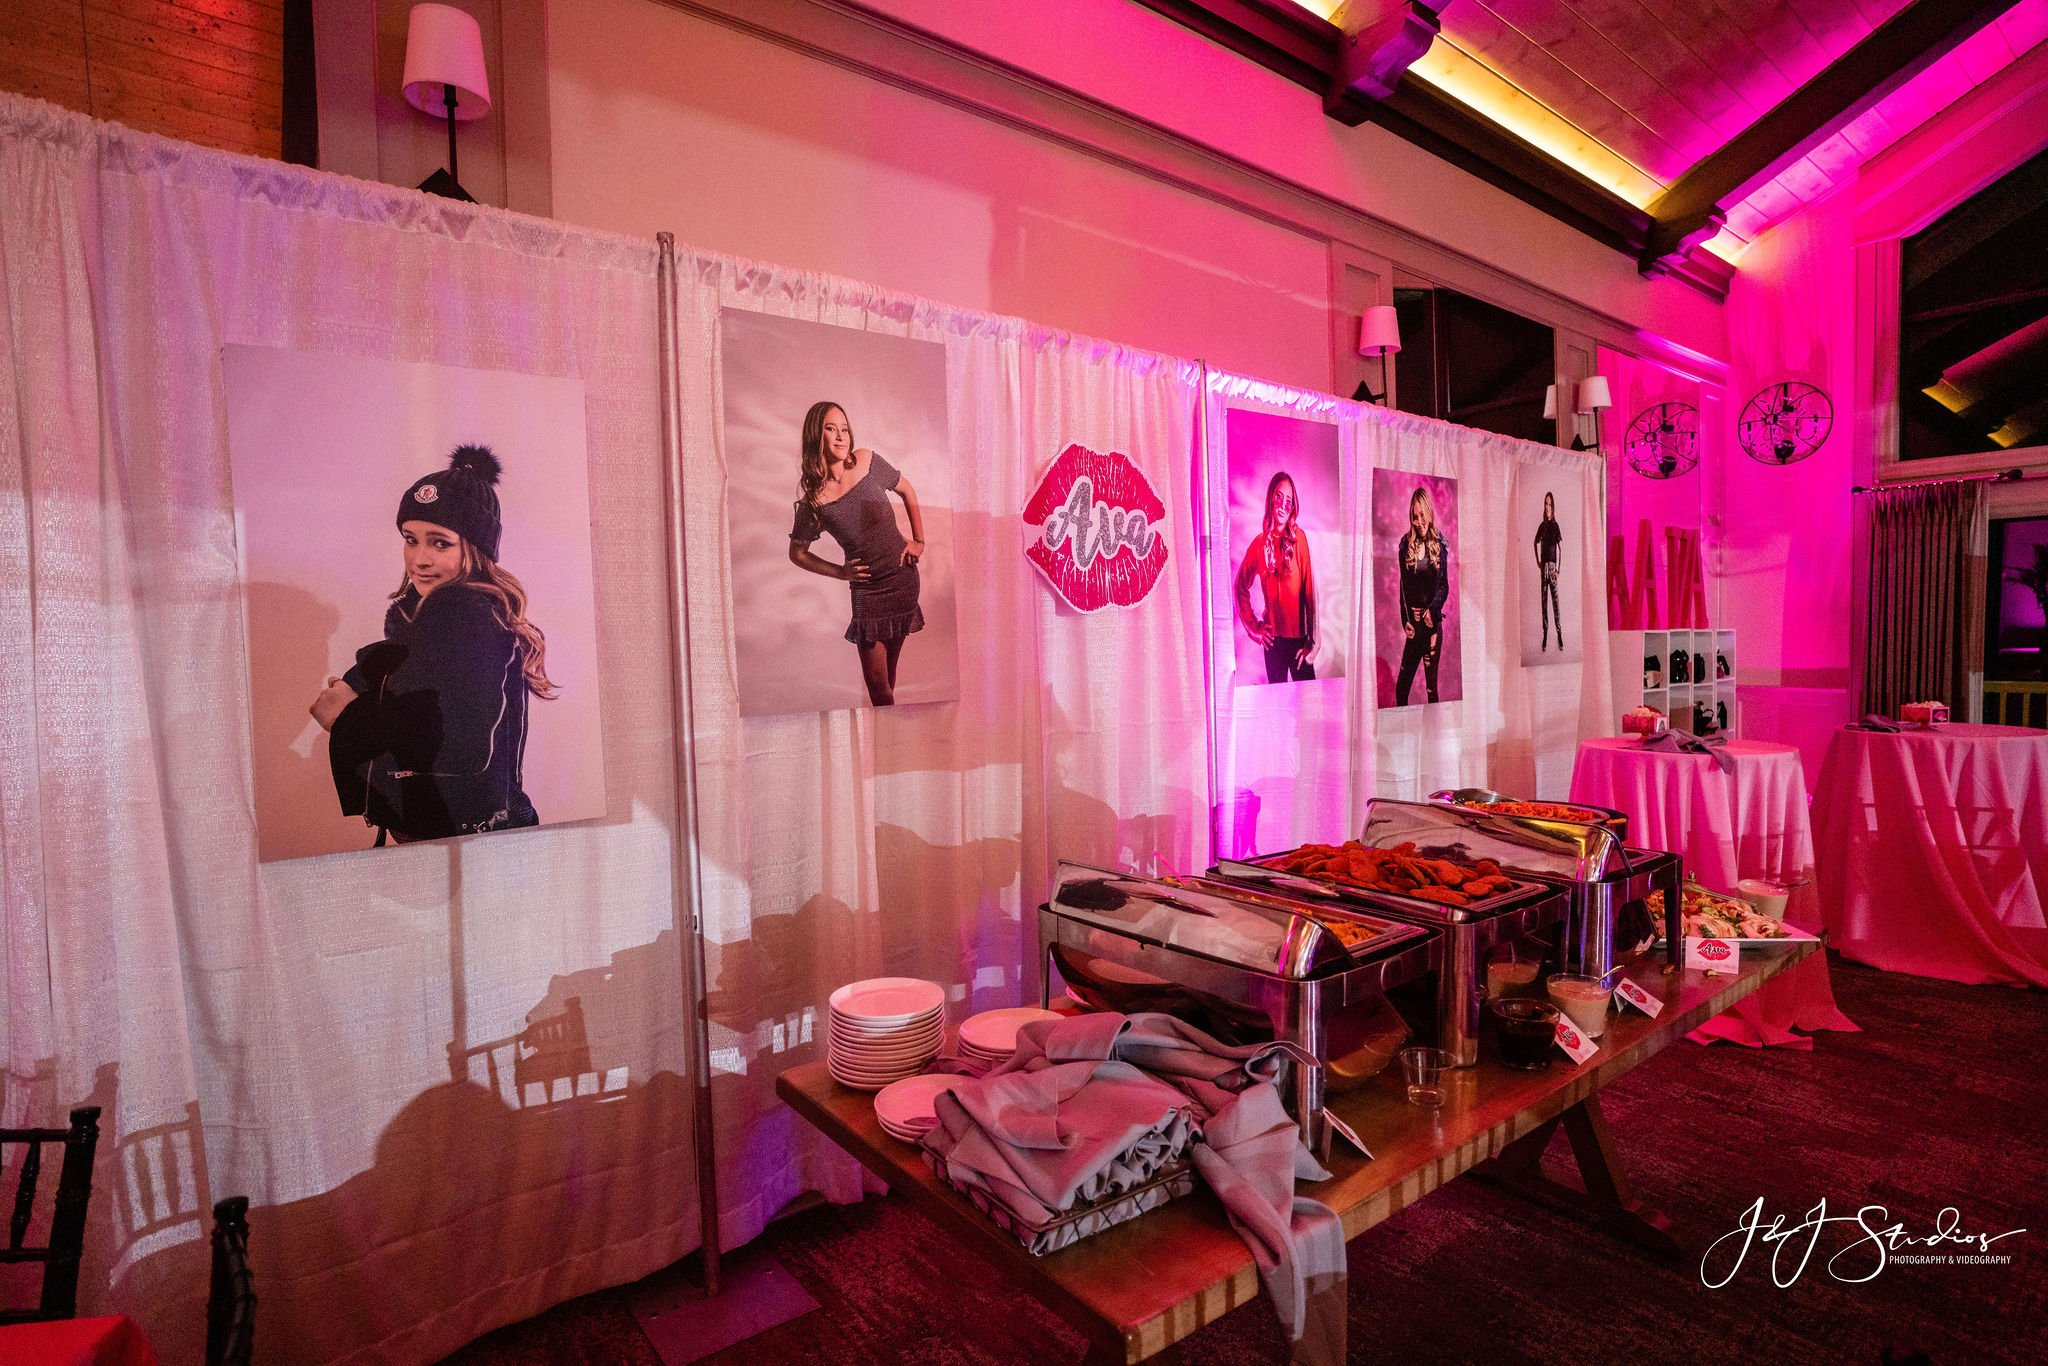 posters of bat mitzvah girl at bat mitzvah